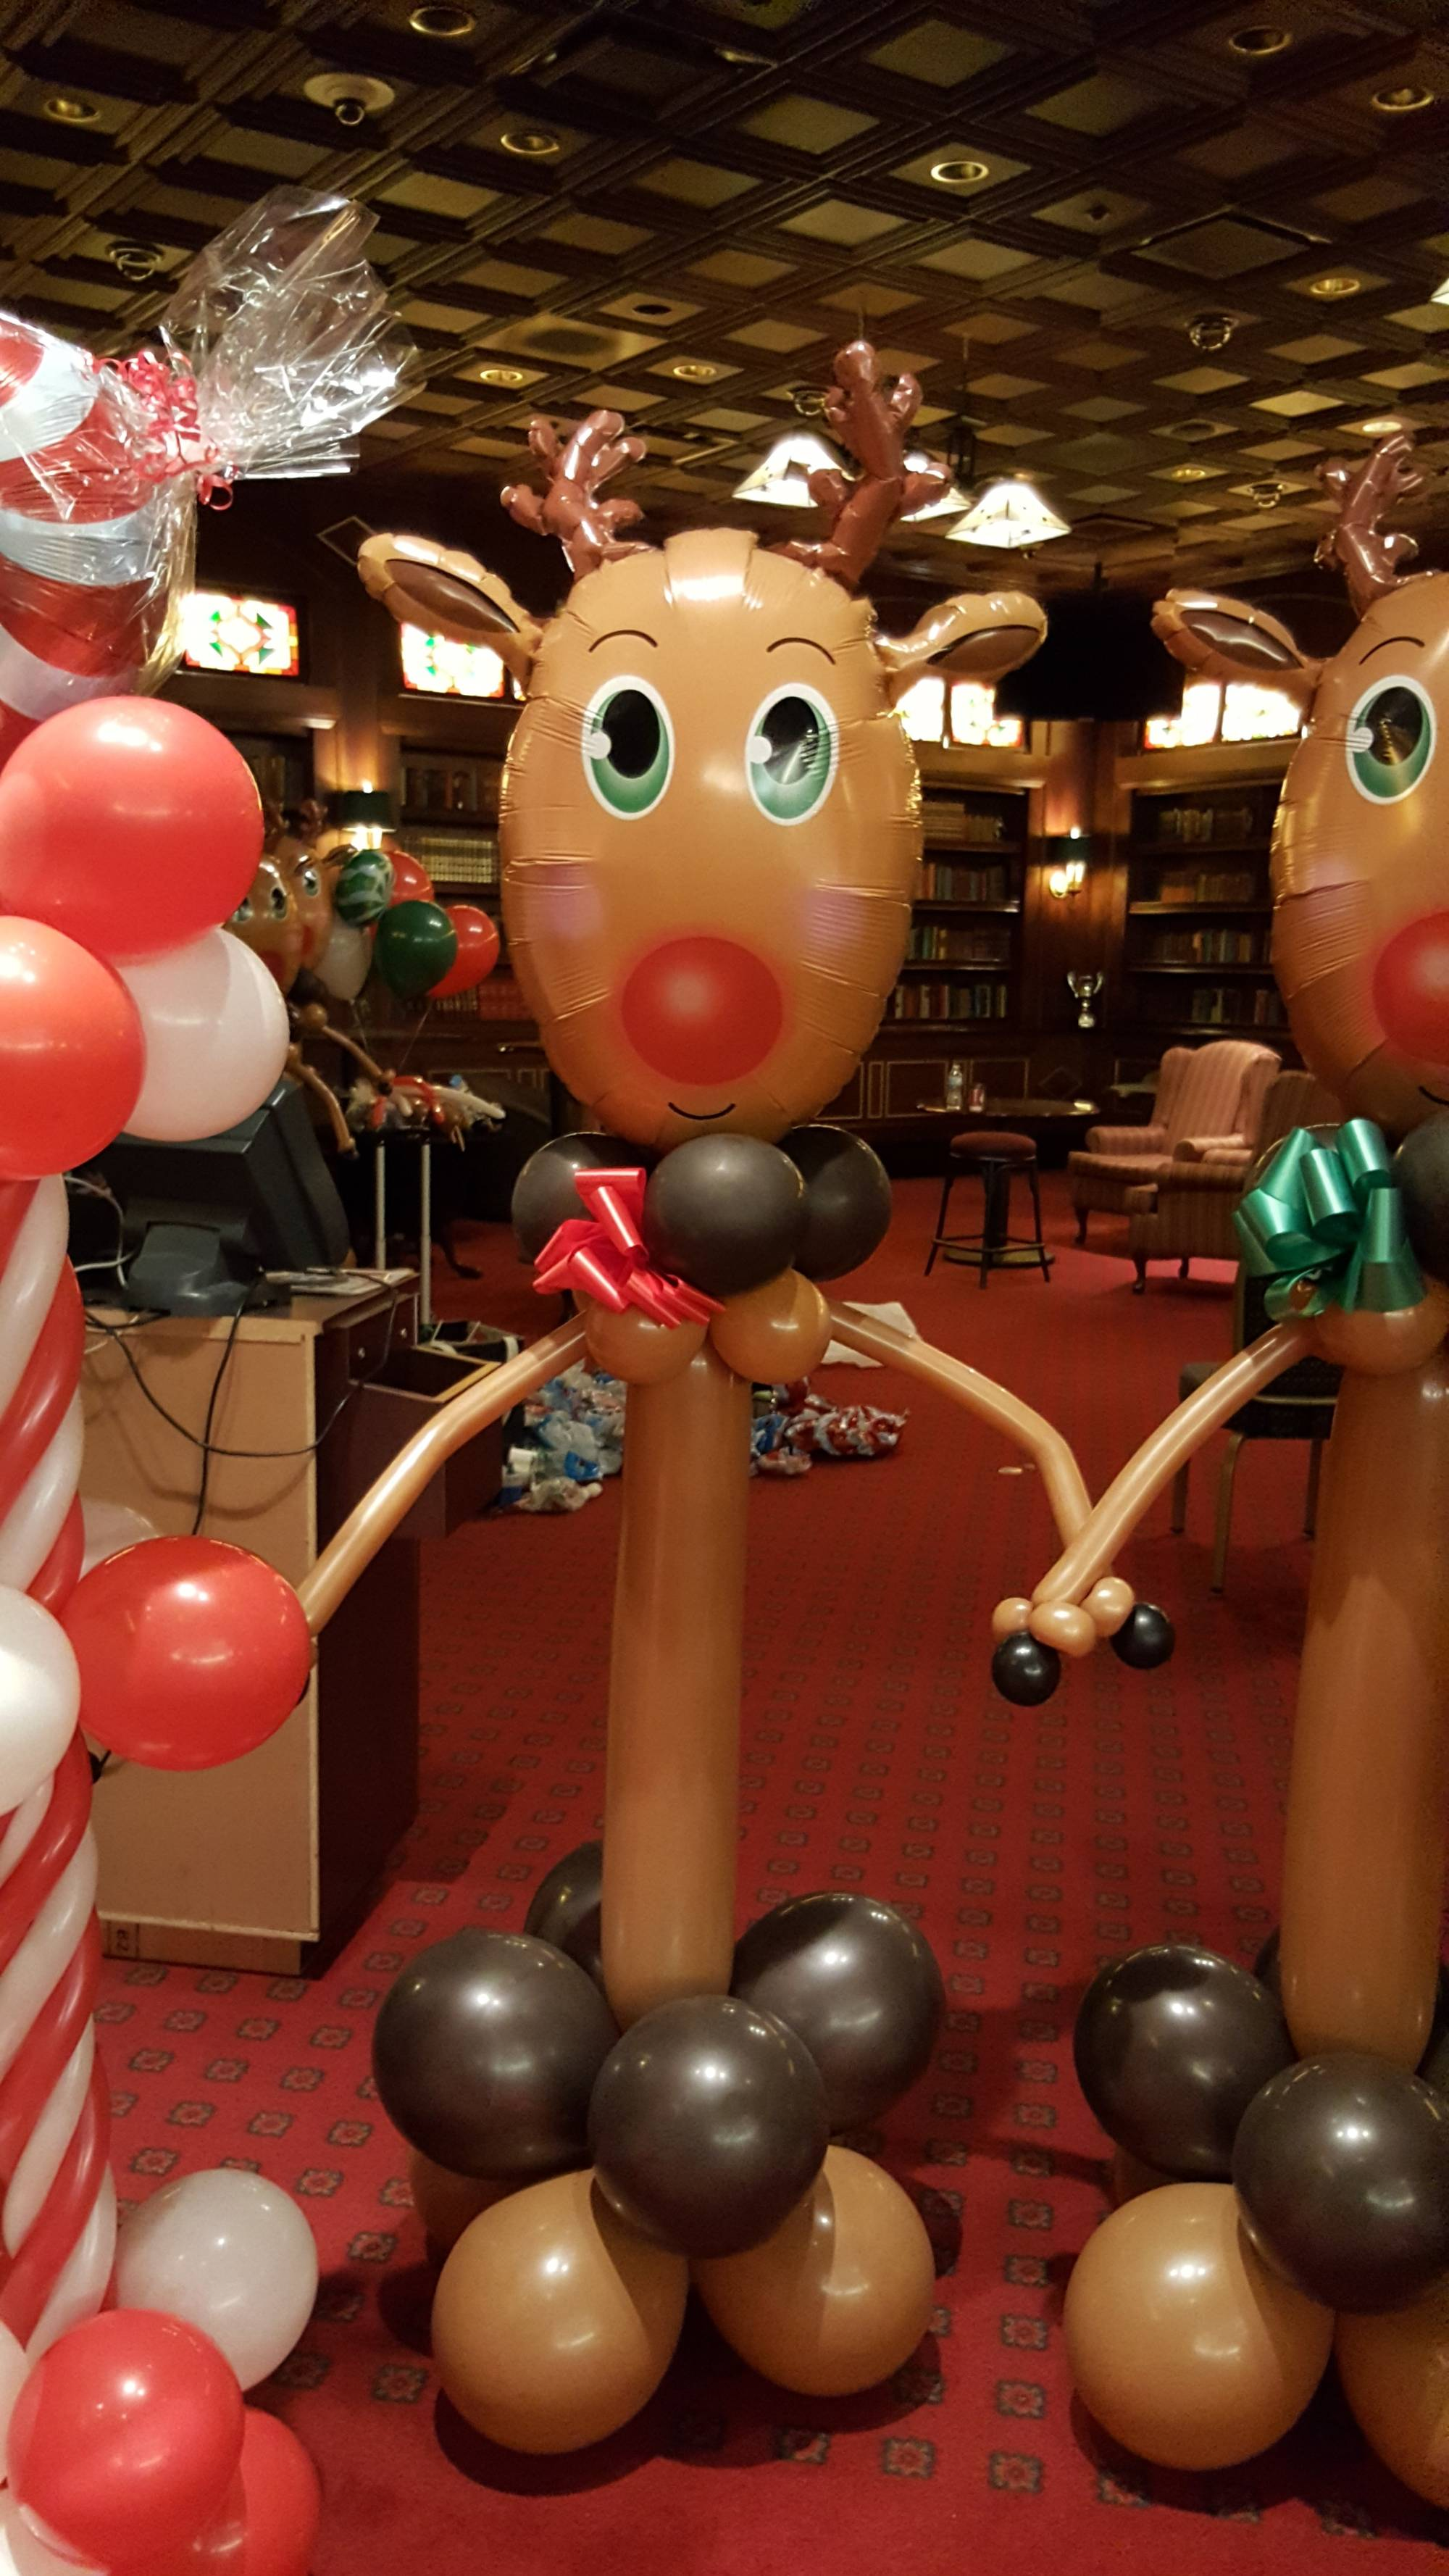 Balloon Reindeer by Balloon Empire